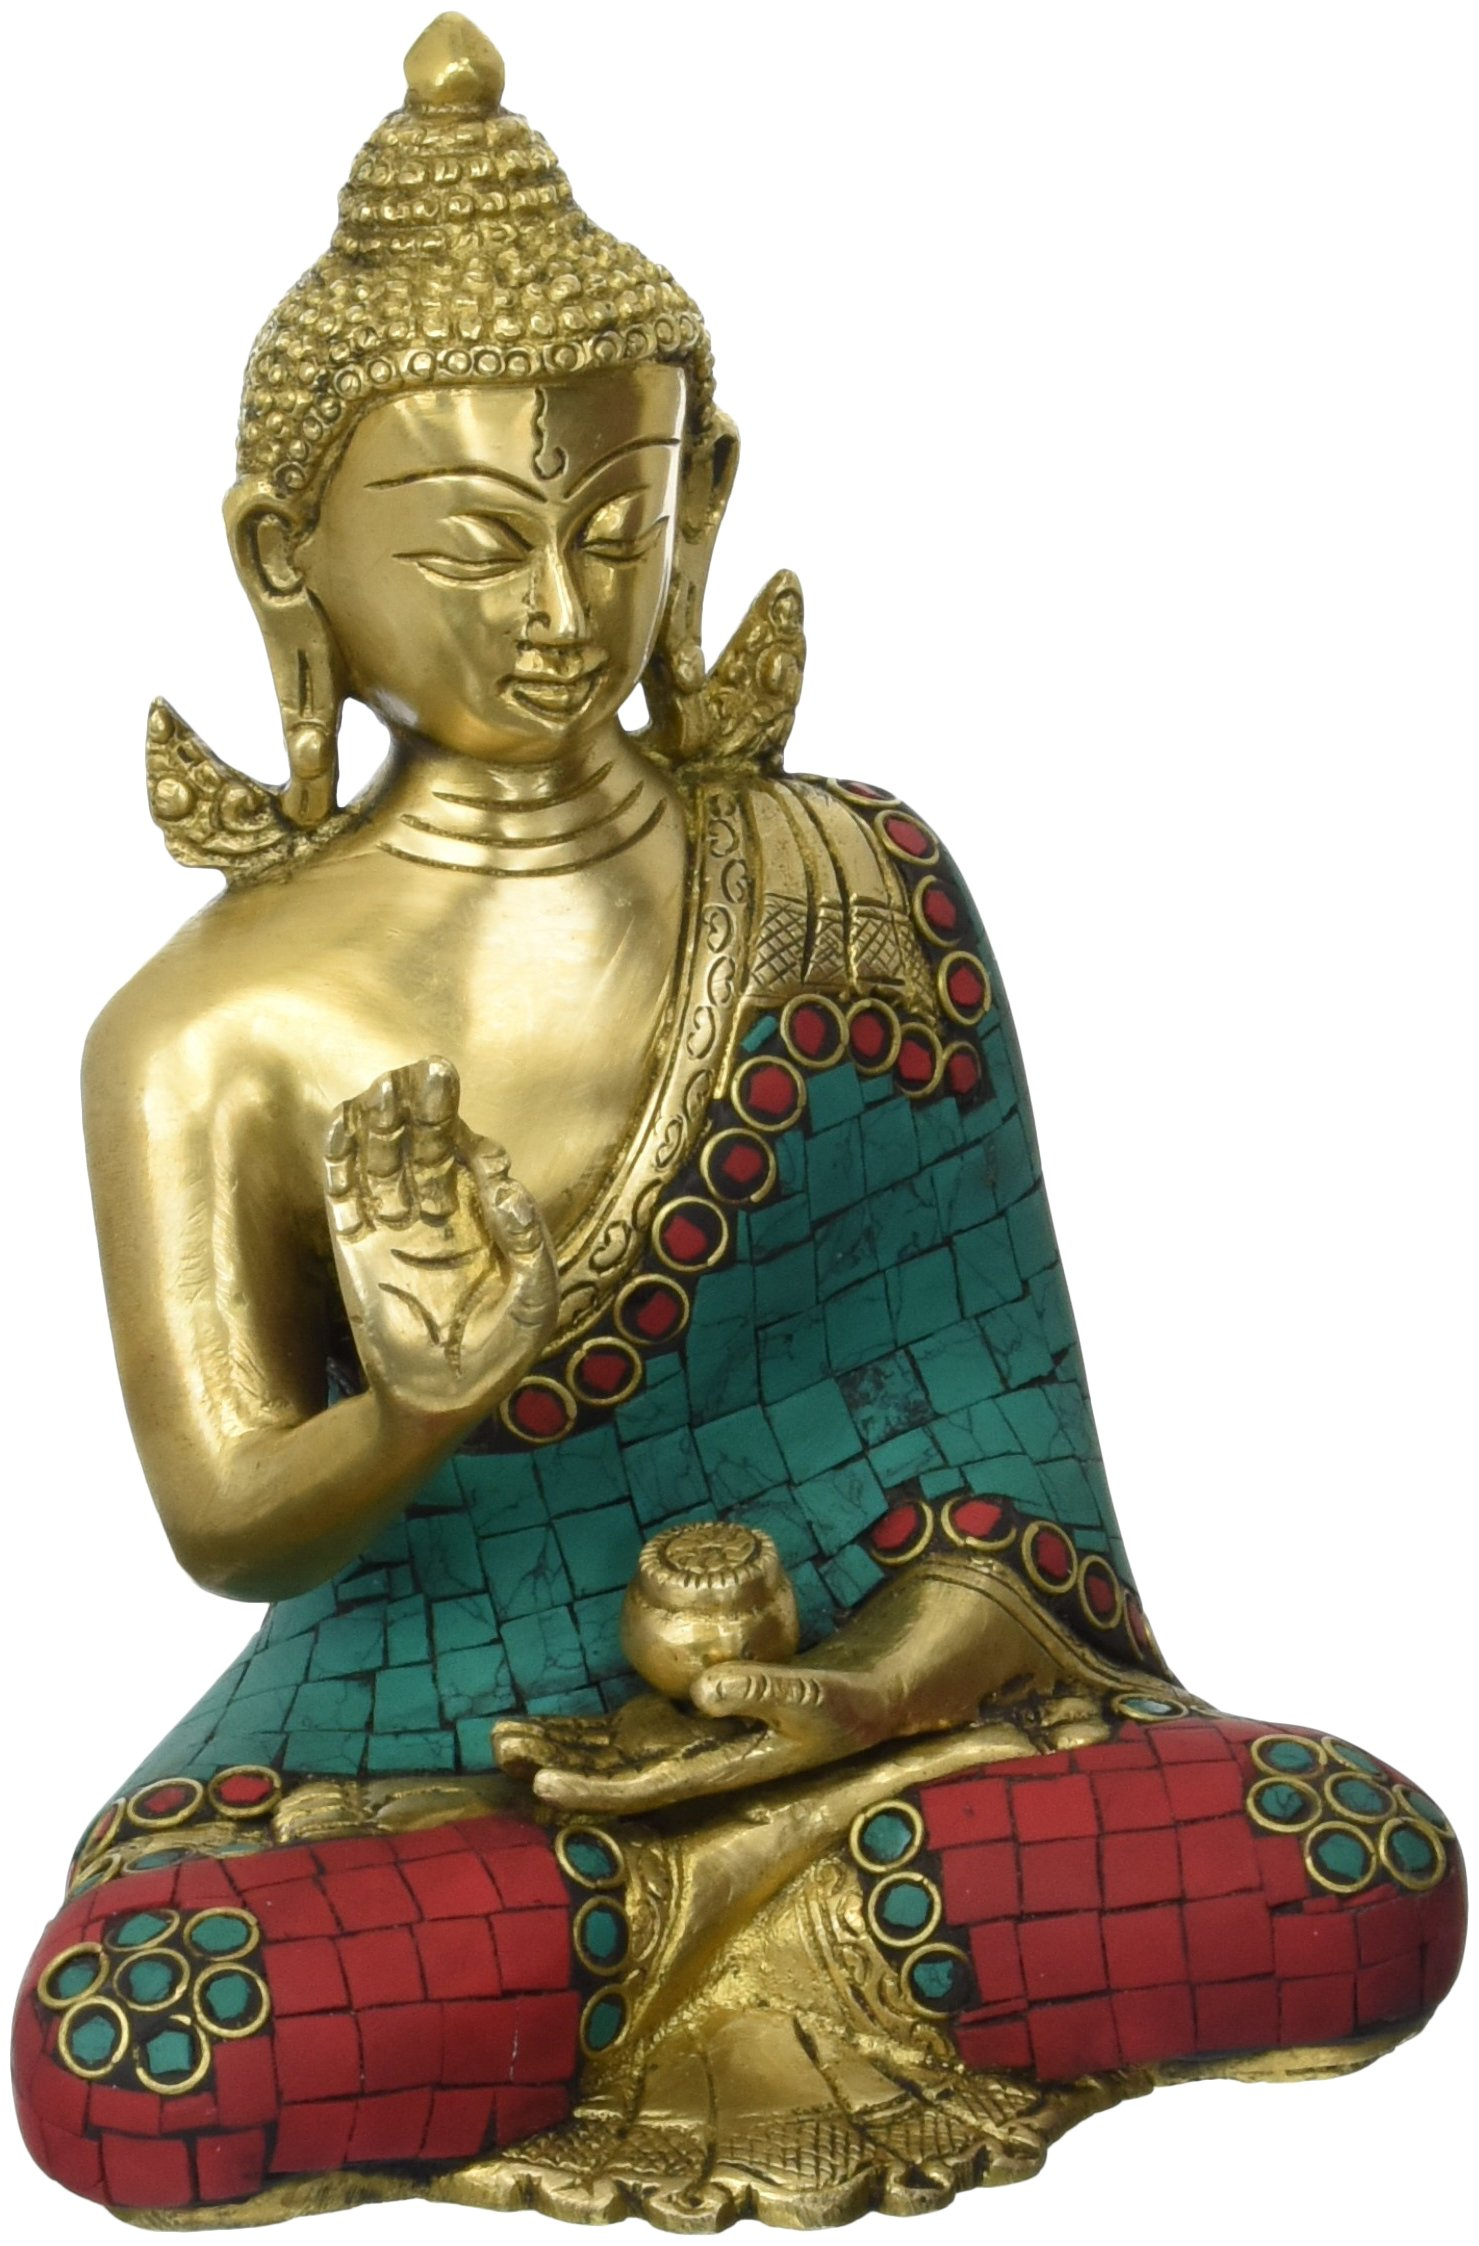 Aone India 6'' Thai Buddha Meditating Peace Harmony Statue - Brass Sculpture + Cash Envelope (Pack Of 10) by AONE INDIA